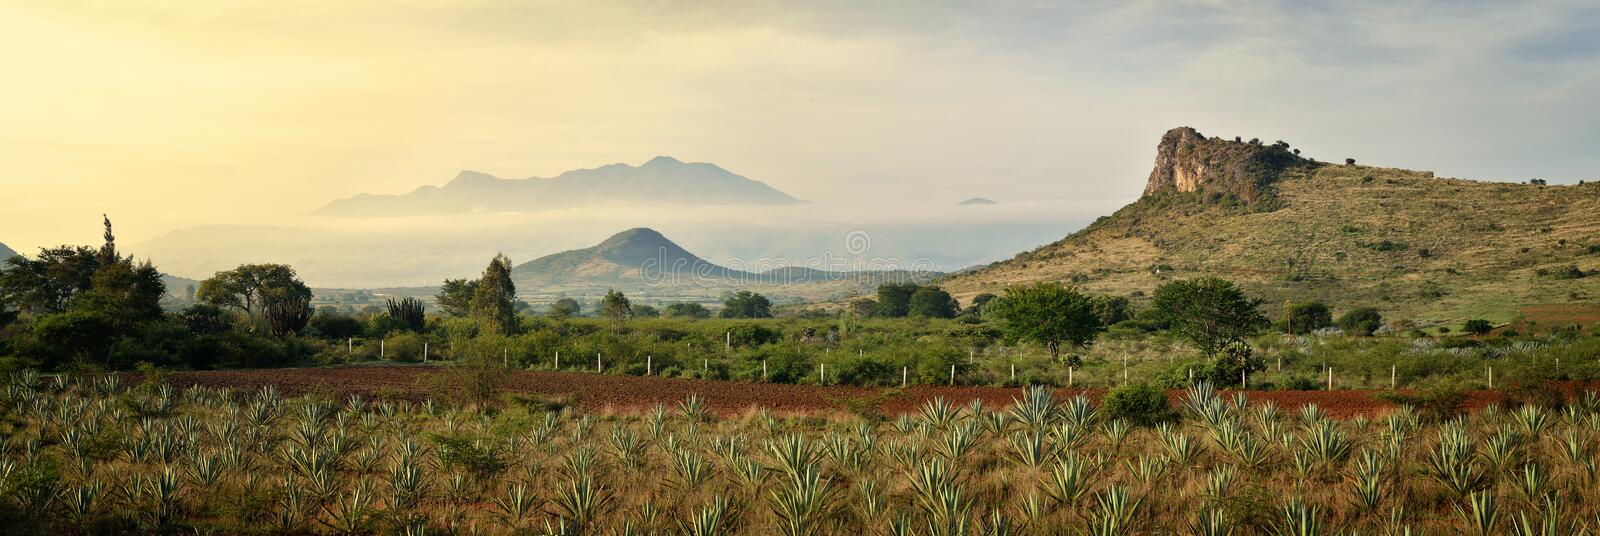 Panoramic views of the Agave mountains in the background stock photos